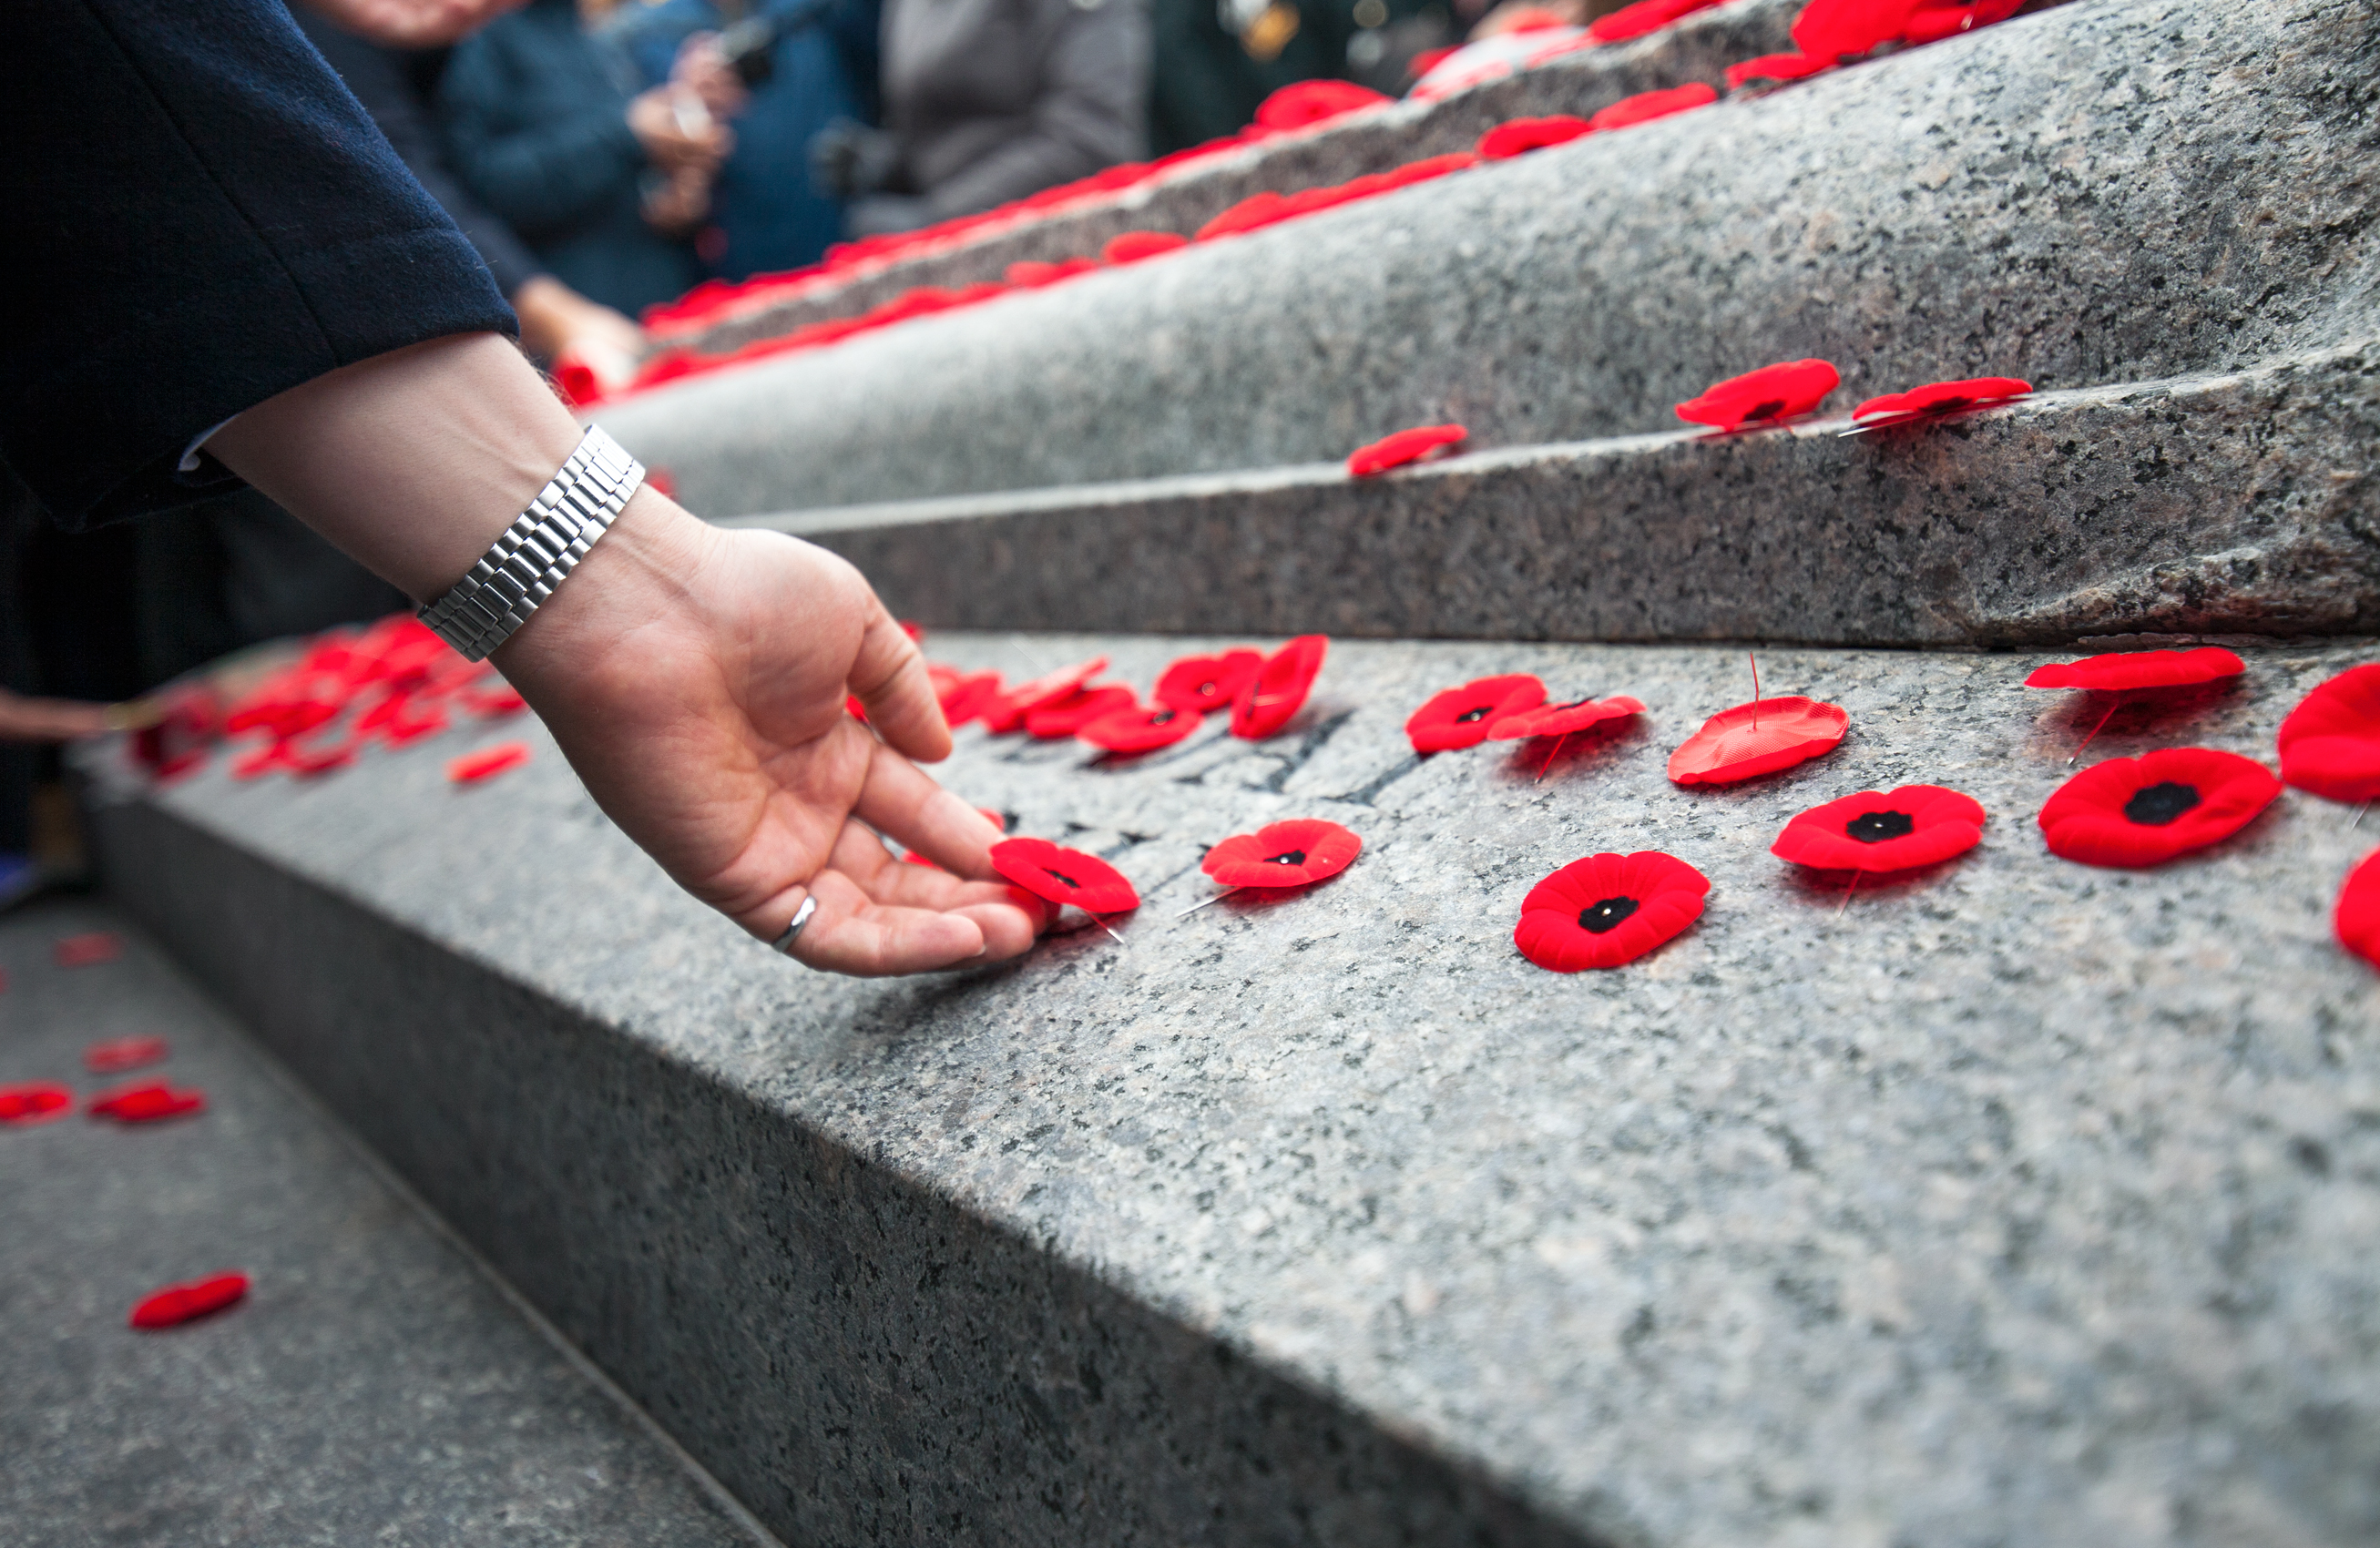 web_feature_remembrance_day4_cred_jaclyn_mcrae-sadik